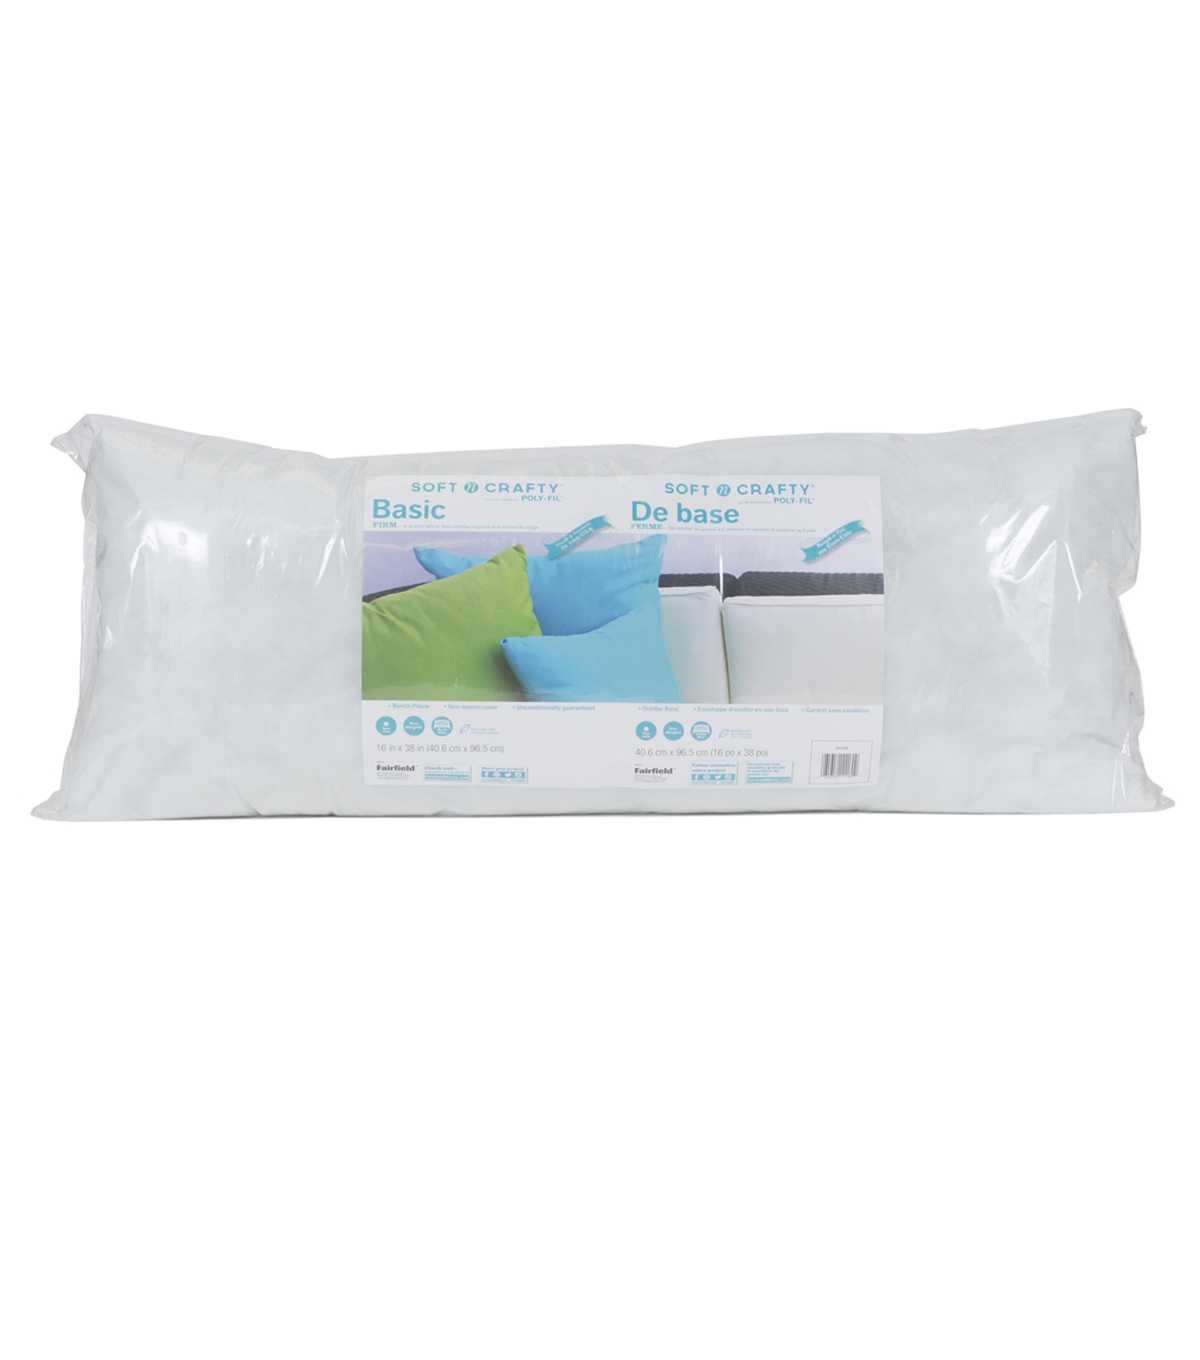 Fairfield Soft N Crafty 16\u0027\u0027x38\u0027\u0027 Basic Pillow